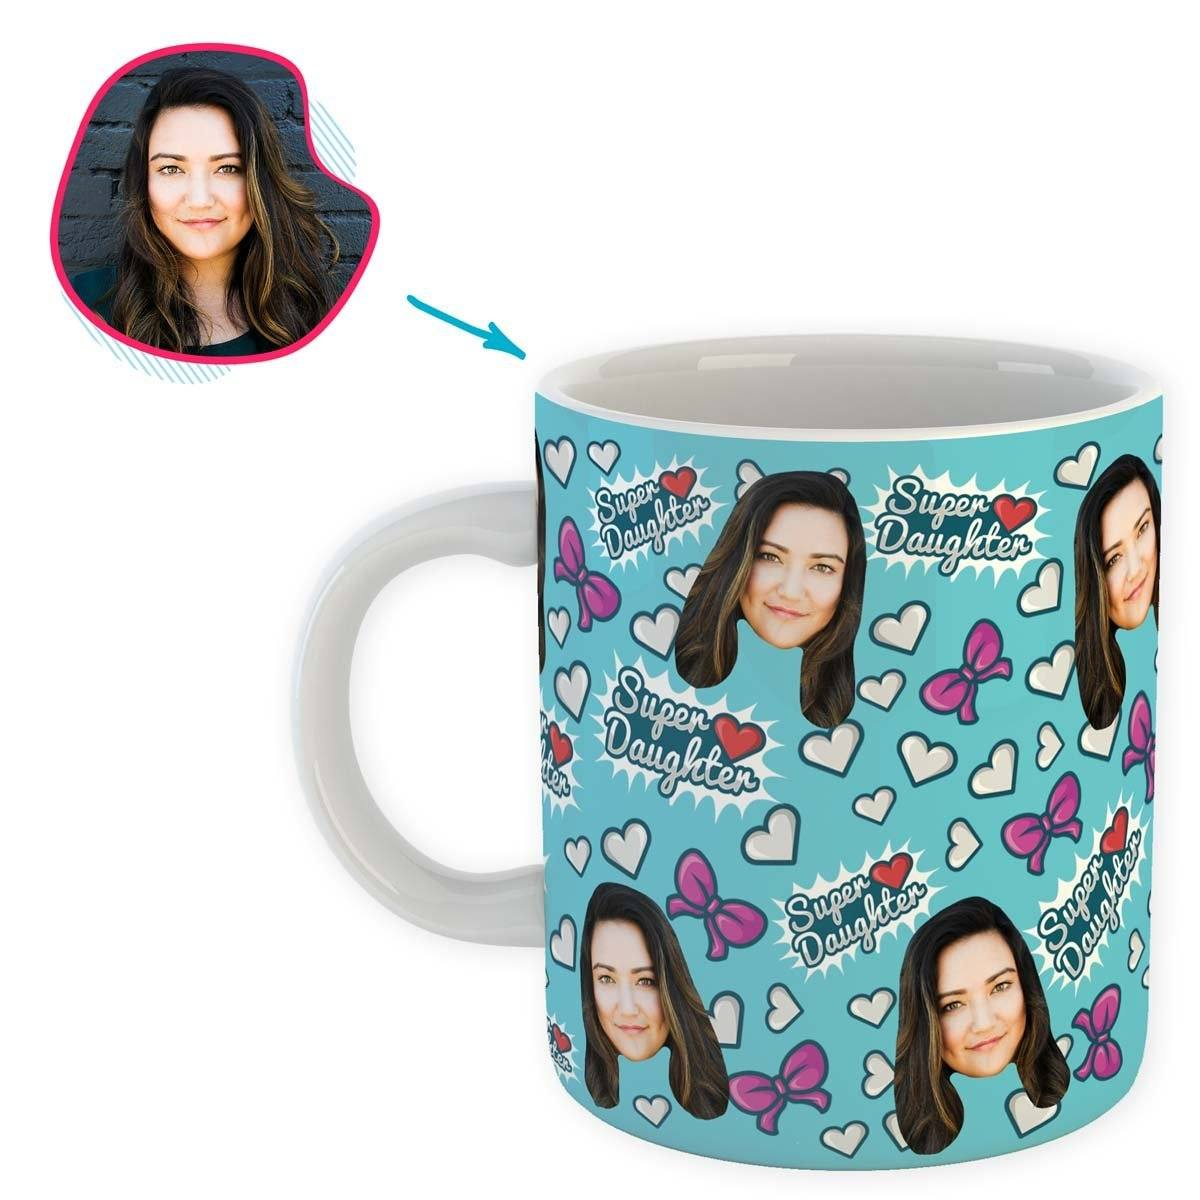 blue Super Daughter mug personalized with photo of face printed on it